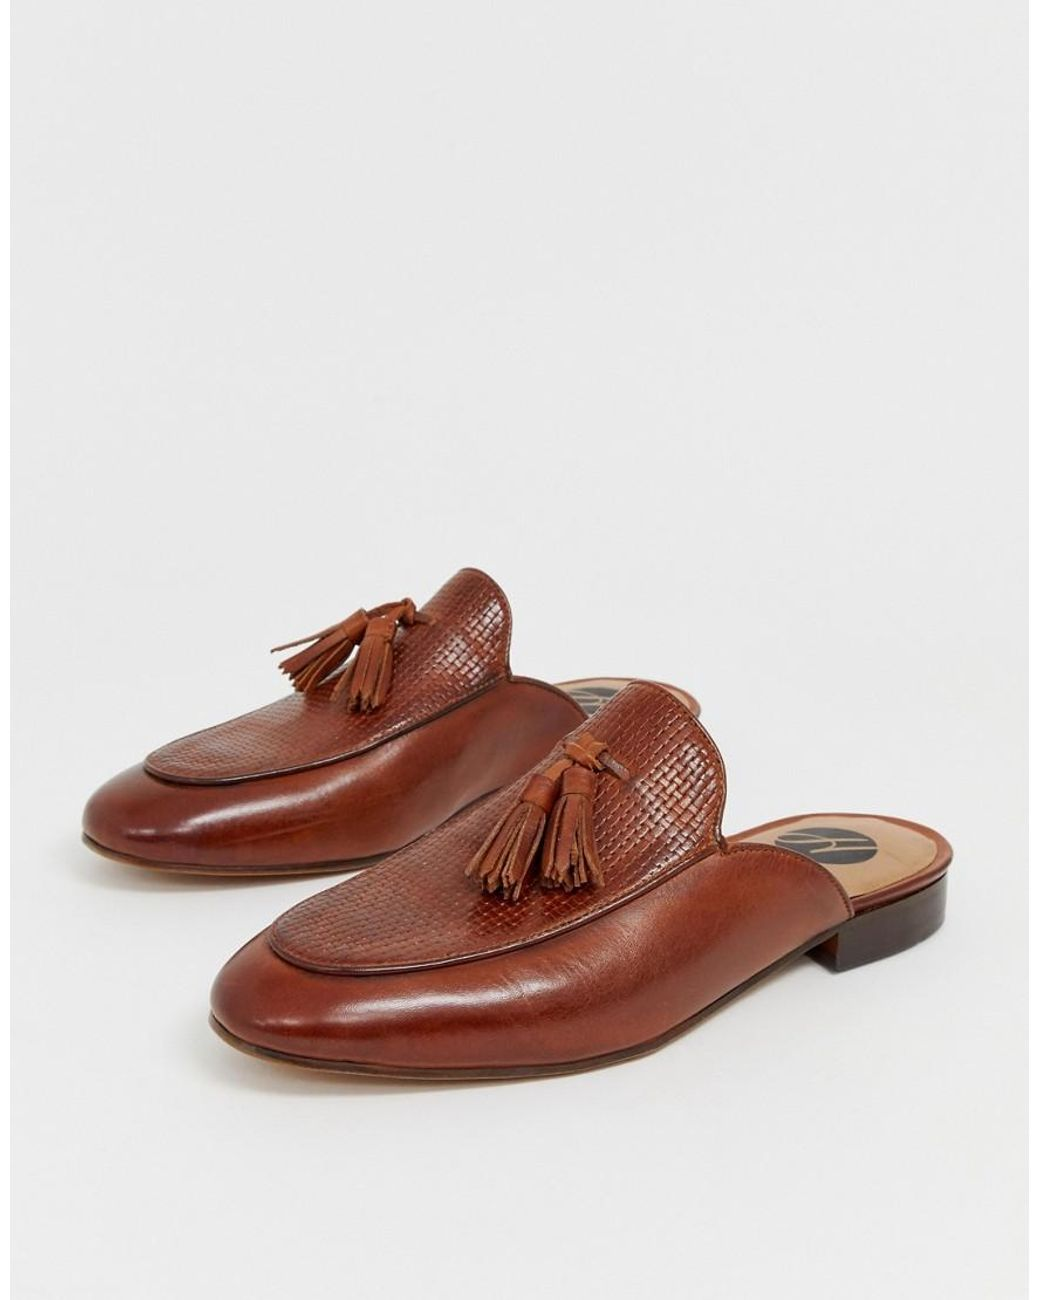 a2b3902e00888 H by Hudson Caradon Woven Tassel Slip On Loafers In Tan in Brown for Men -  Lyst